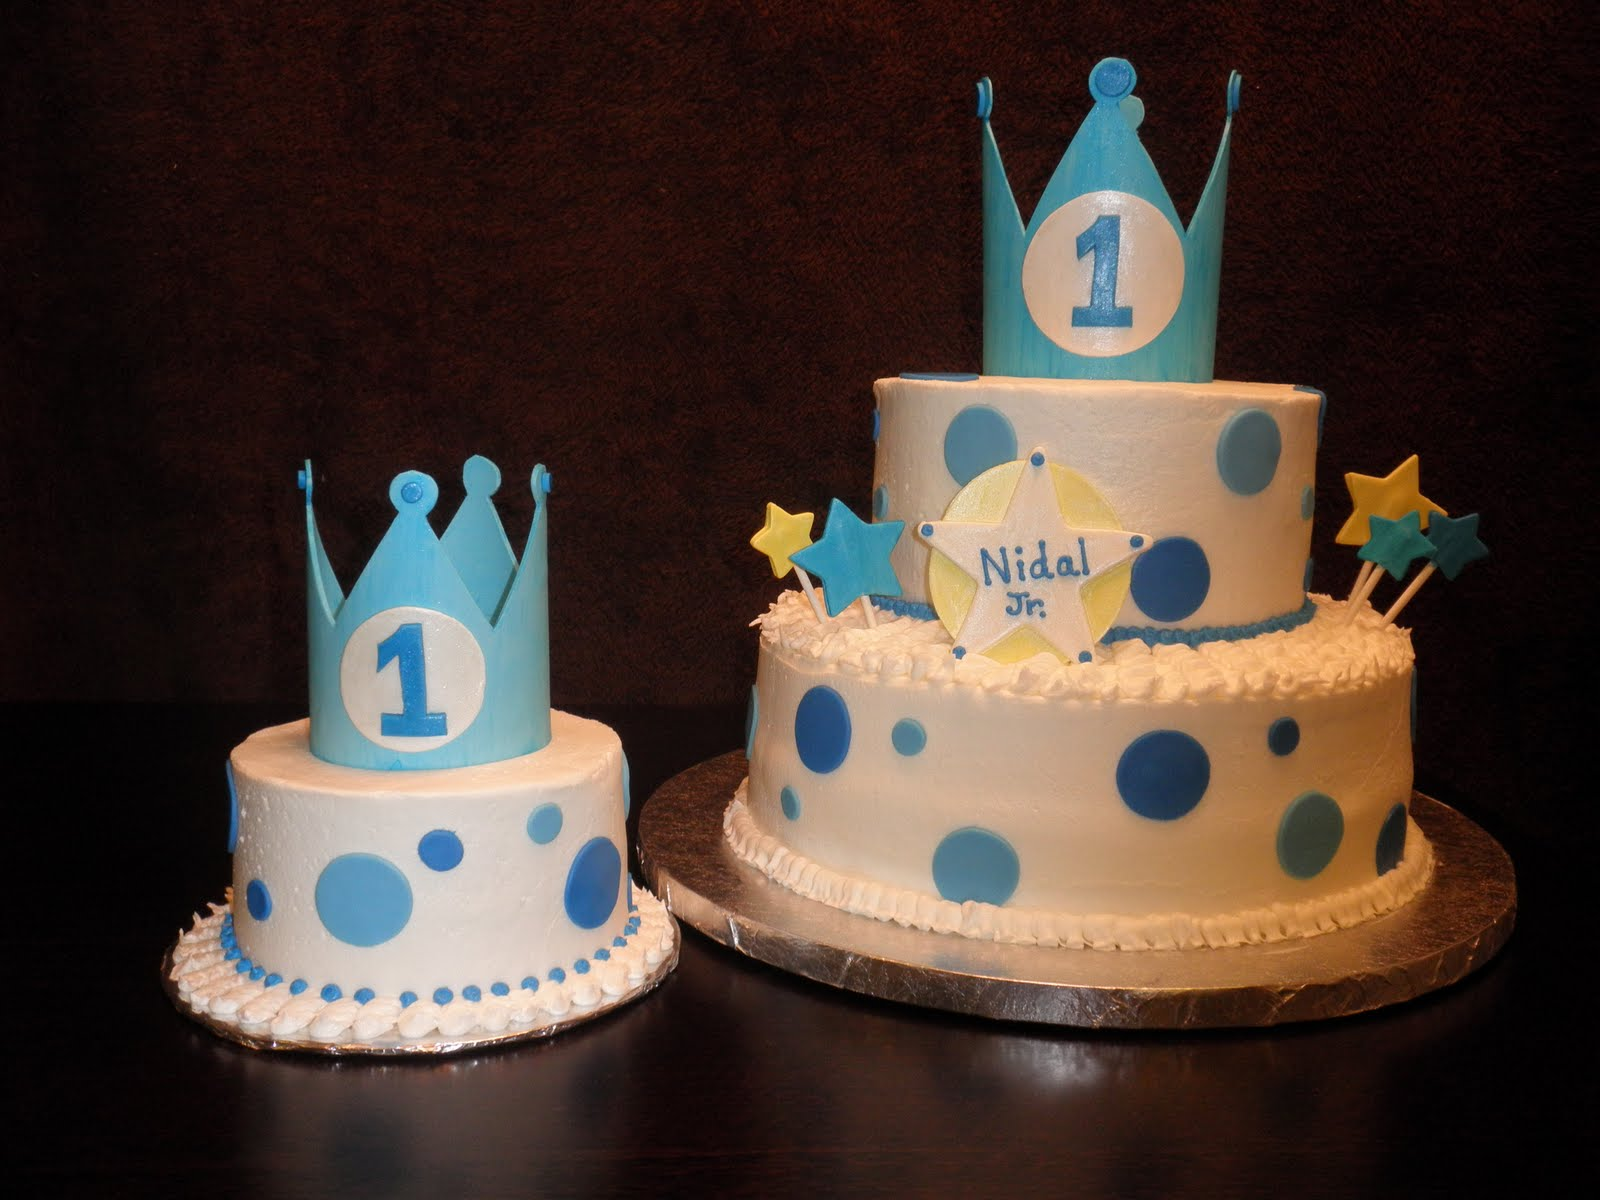 Cake Ideas For Baby Boy 1st Birthday : Blissful Bites By Brandy: Baby s 1st Birthday